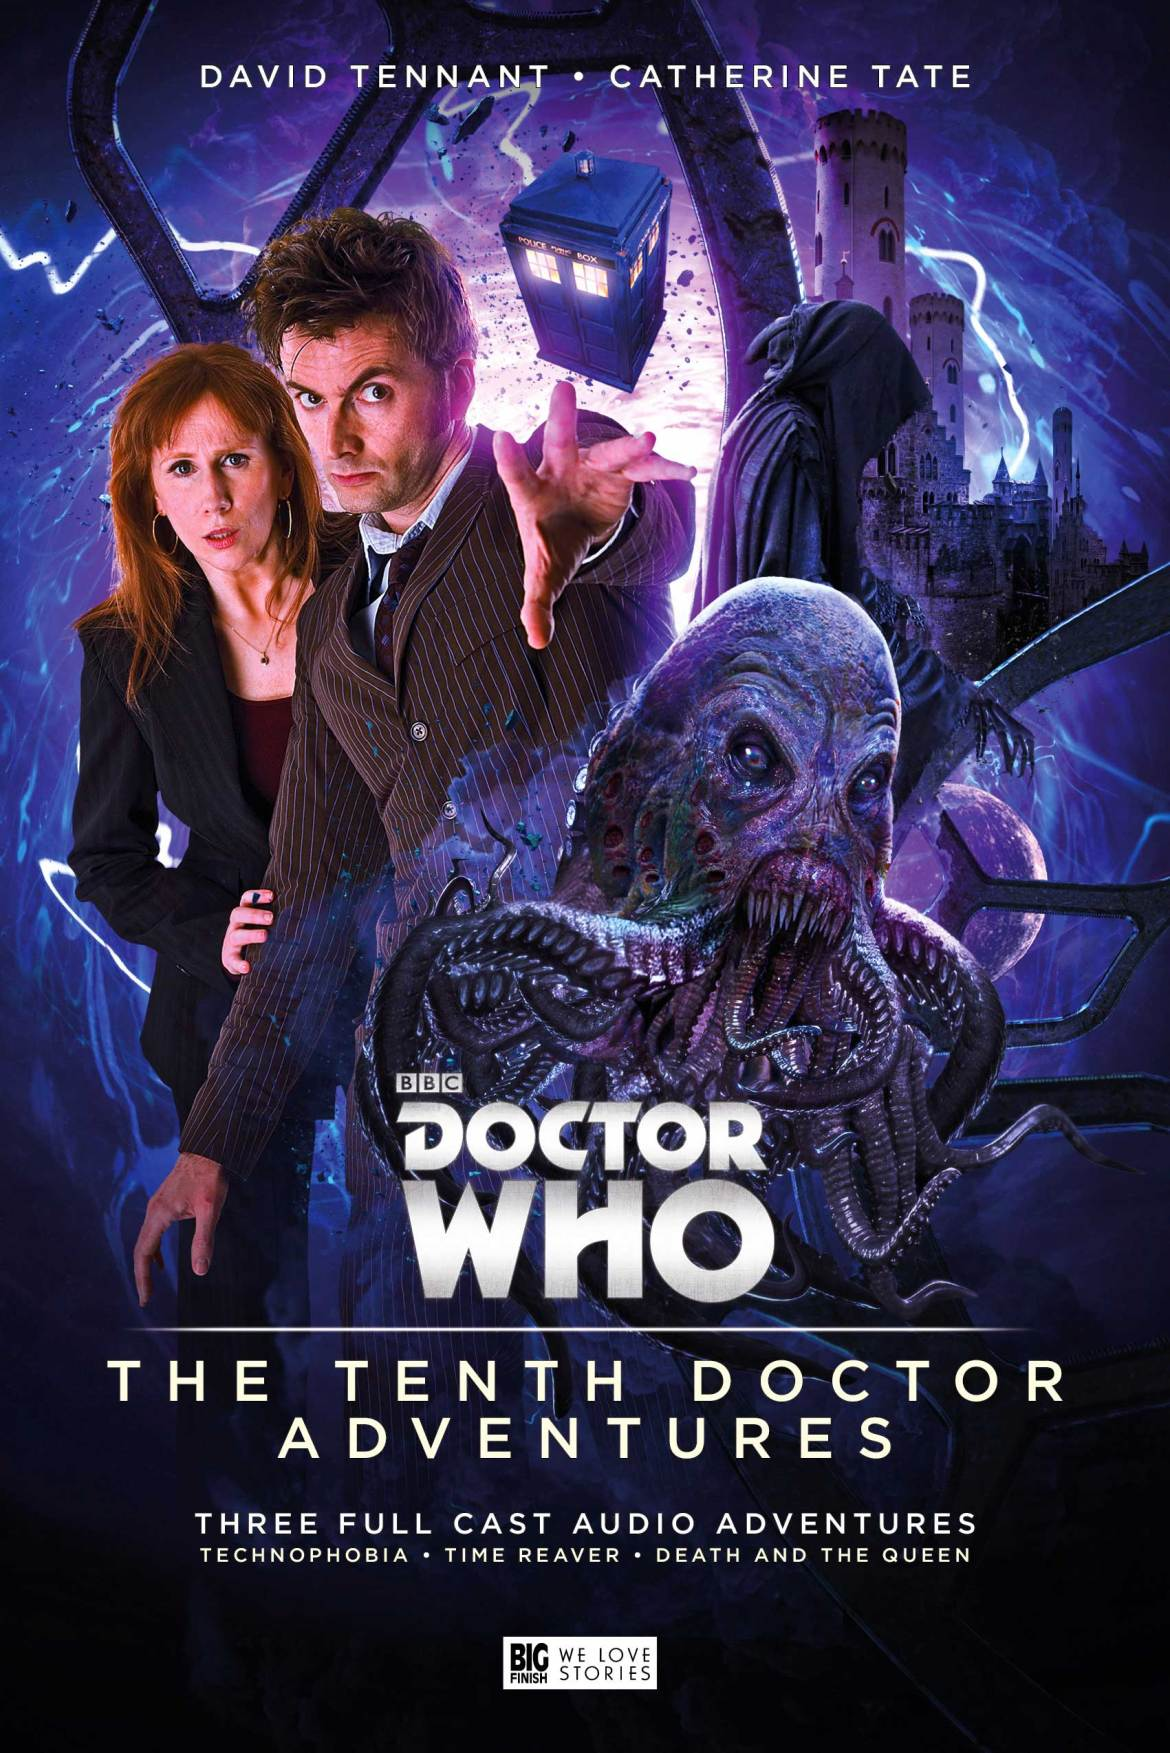 Doctor Who: Tenth Doctor audio adventures from Big Finish Productions